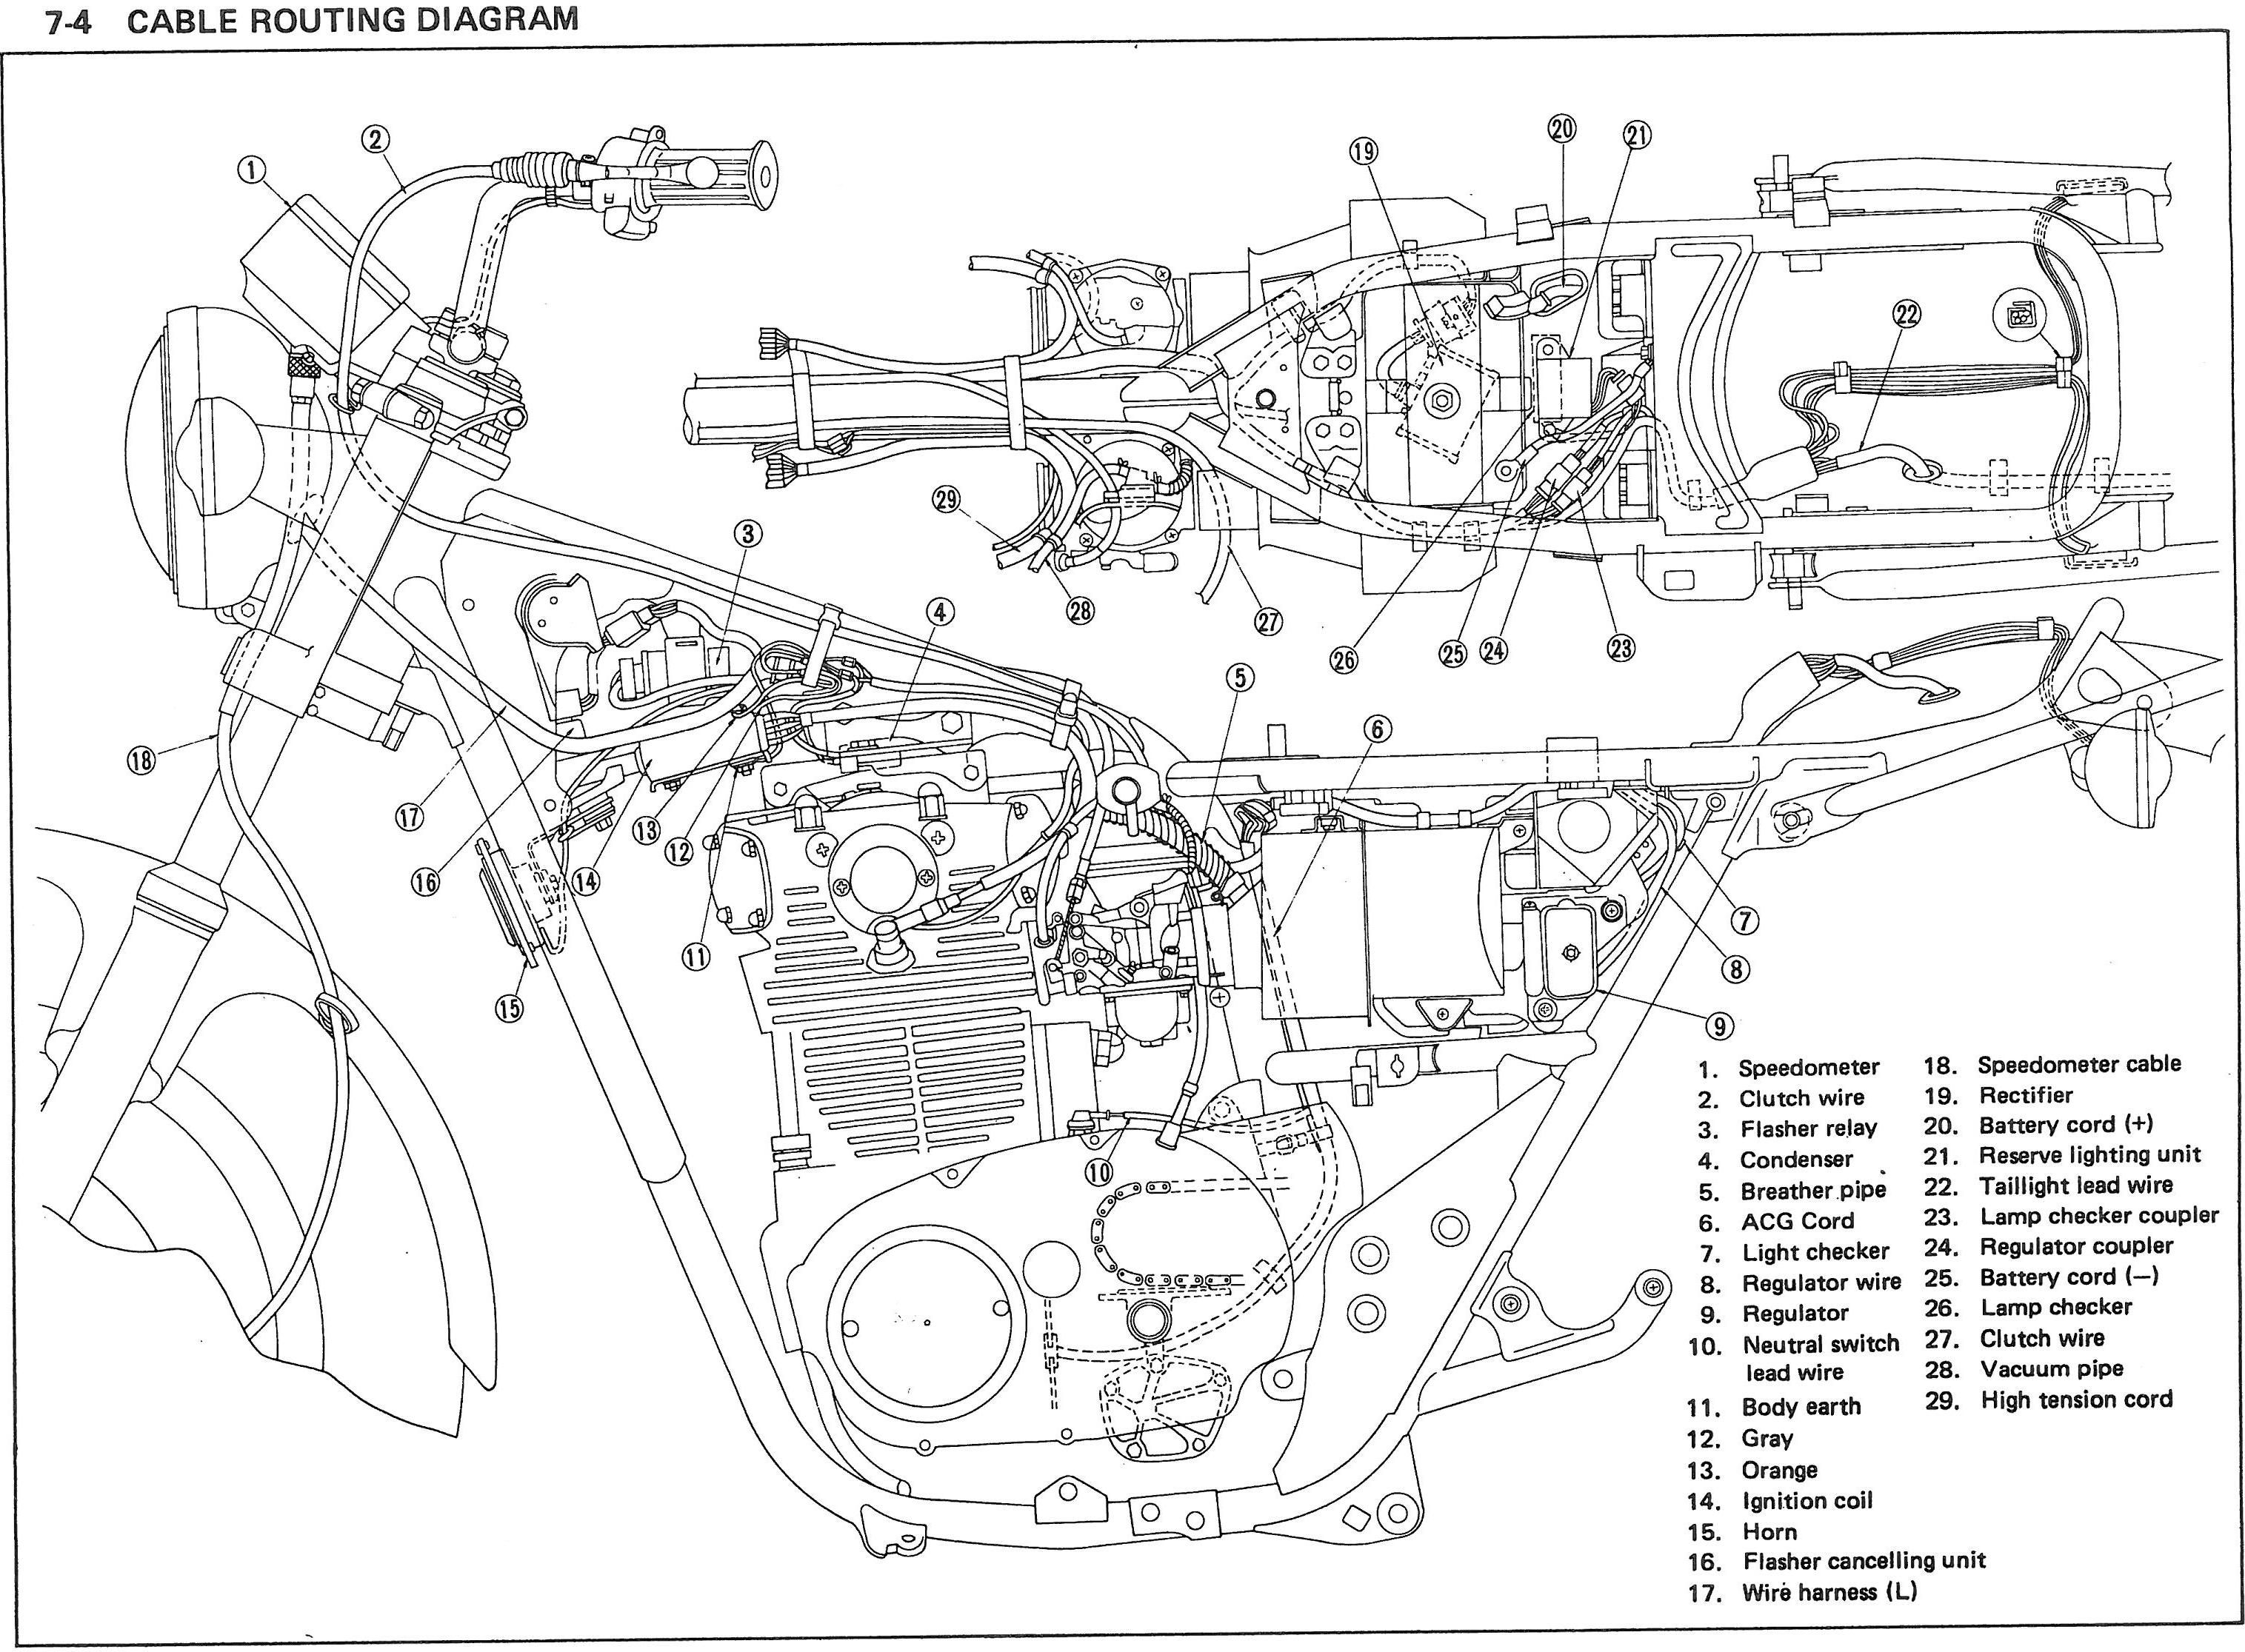 6a8055d2be1cf75e9abdb39ca388258e yamaha xs400 wiring diagram yamaha rd200 wiring diagram \u2022 free 1980 yamaha xs400 wiring diagram at panicattacktreatment.co